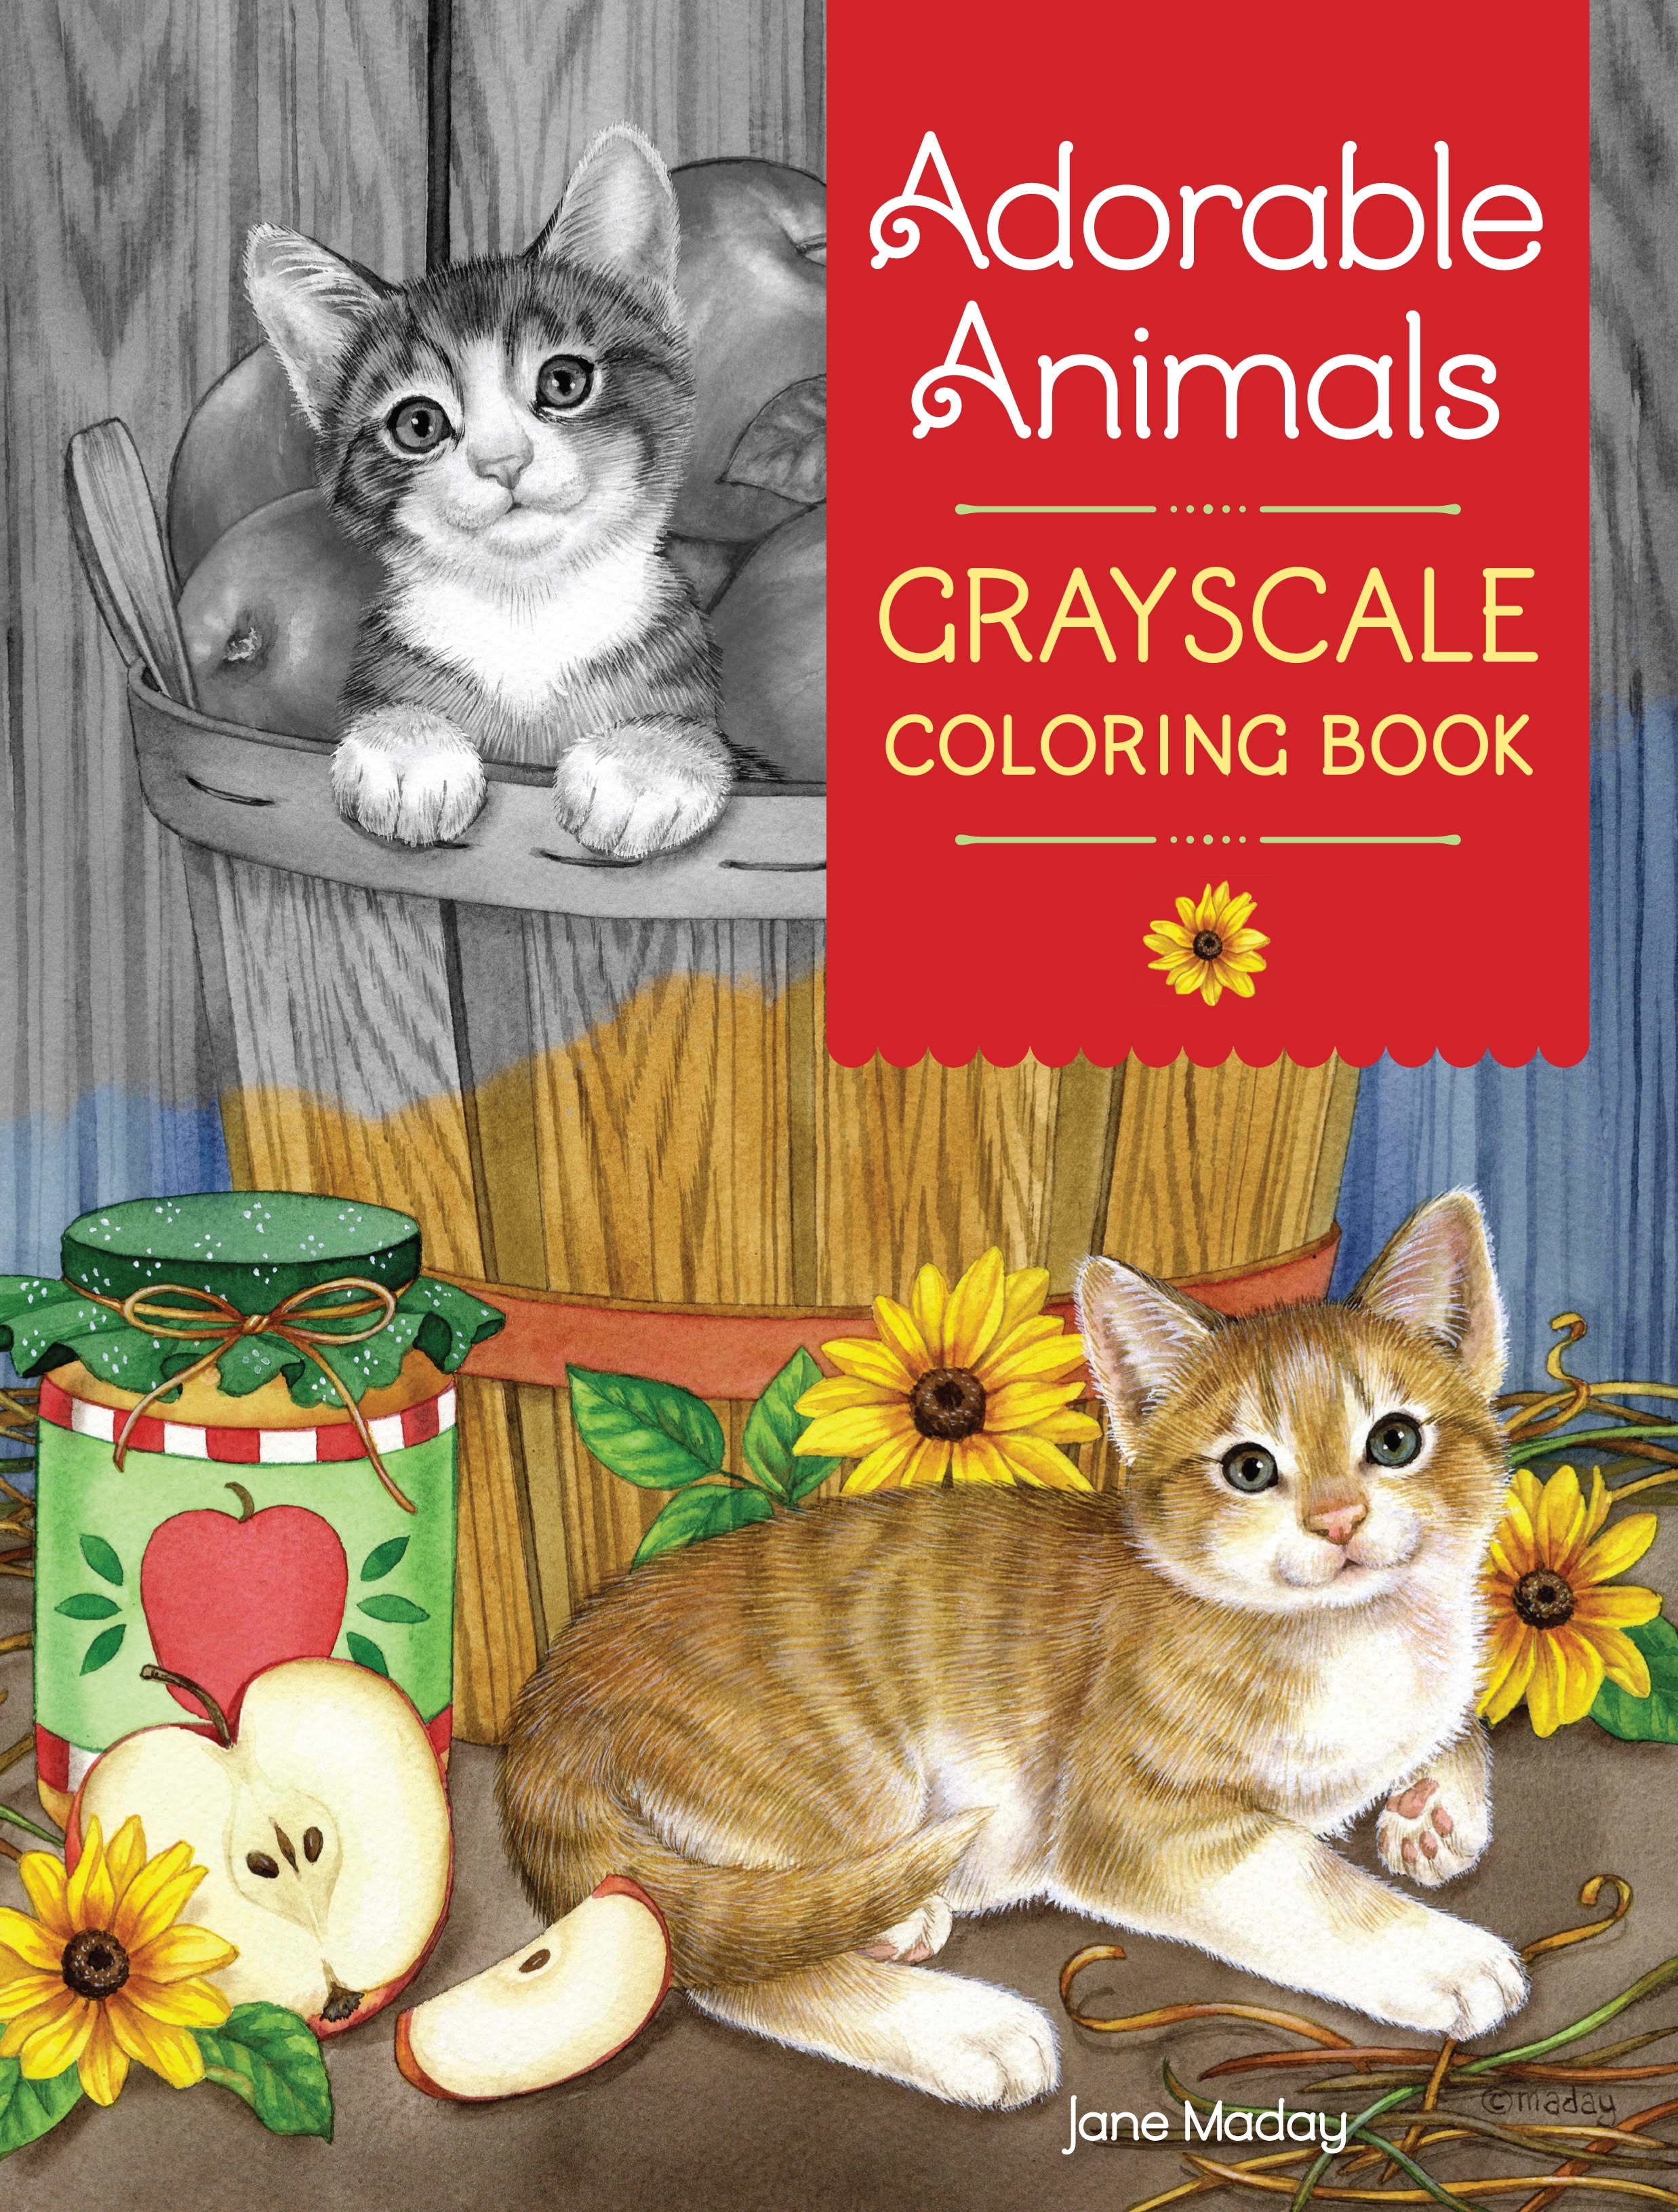 Adorable Animals Grayscale Coloring Book By Jane Maday Penguin Books Australia